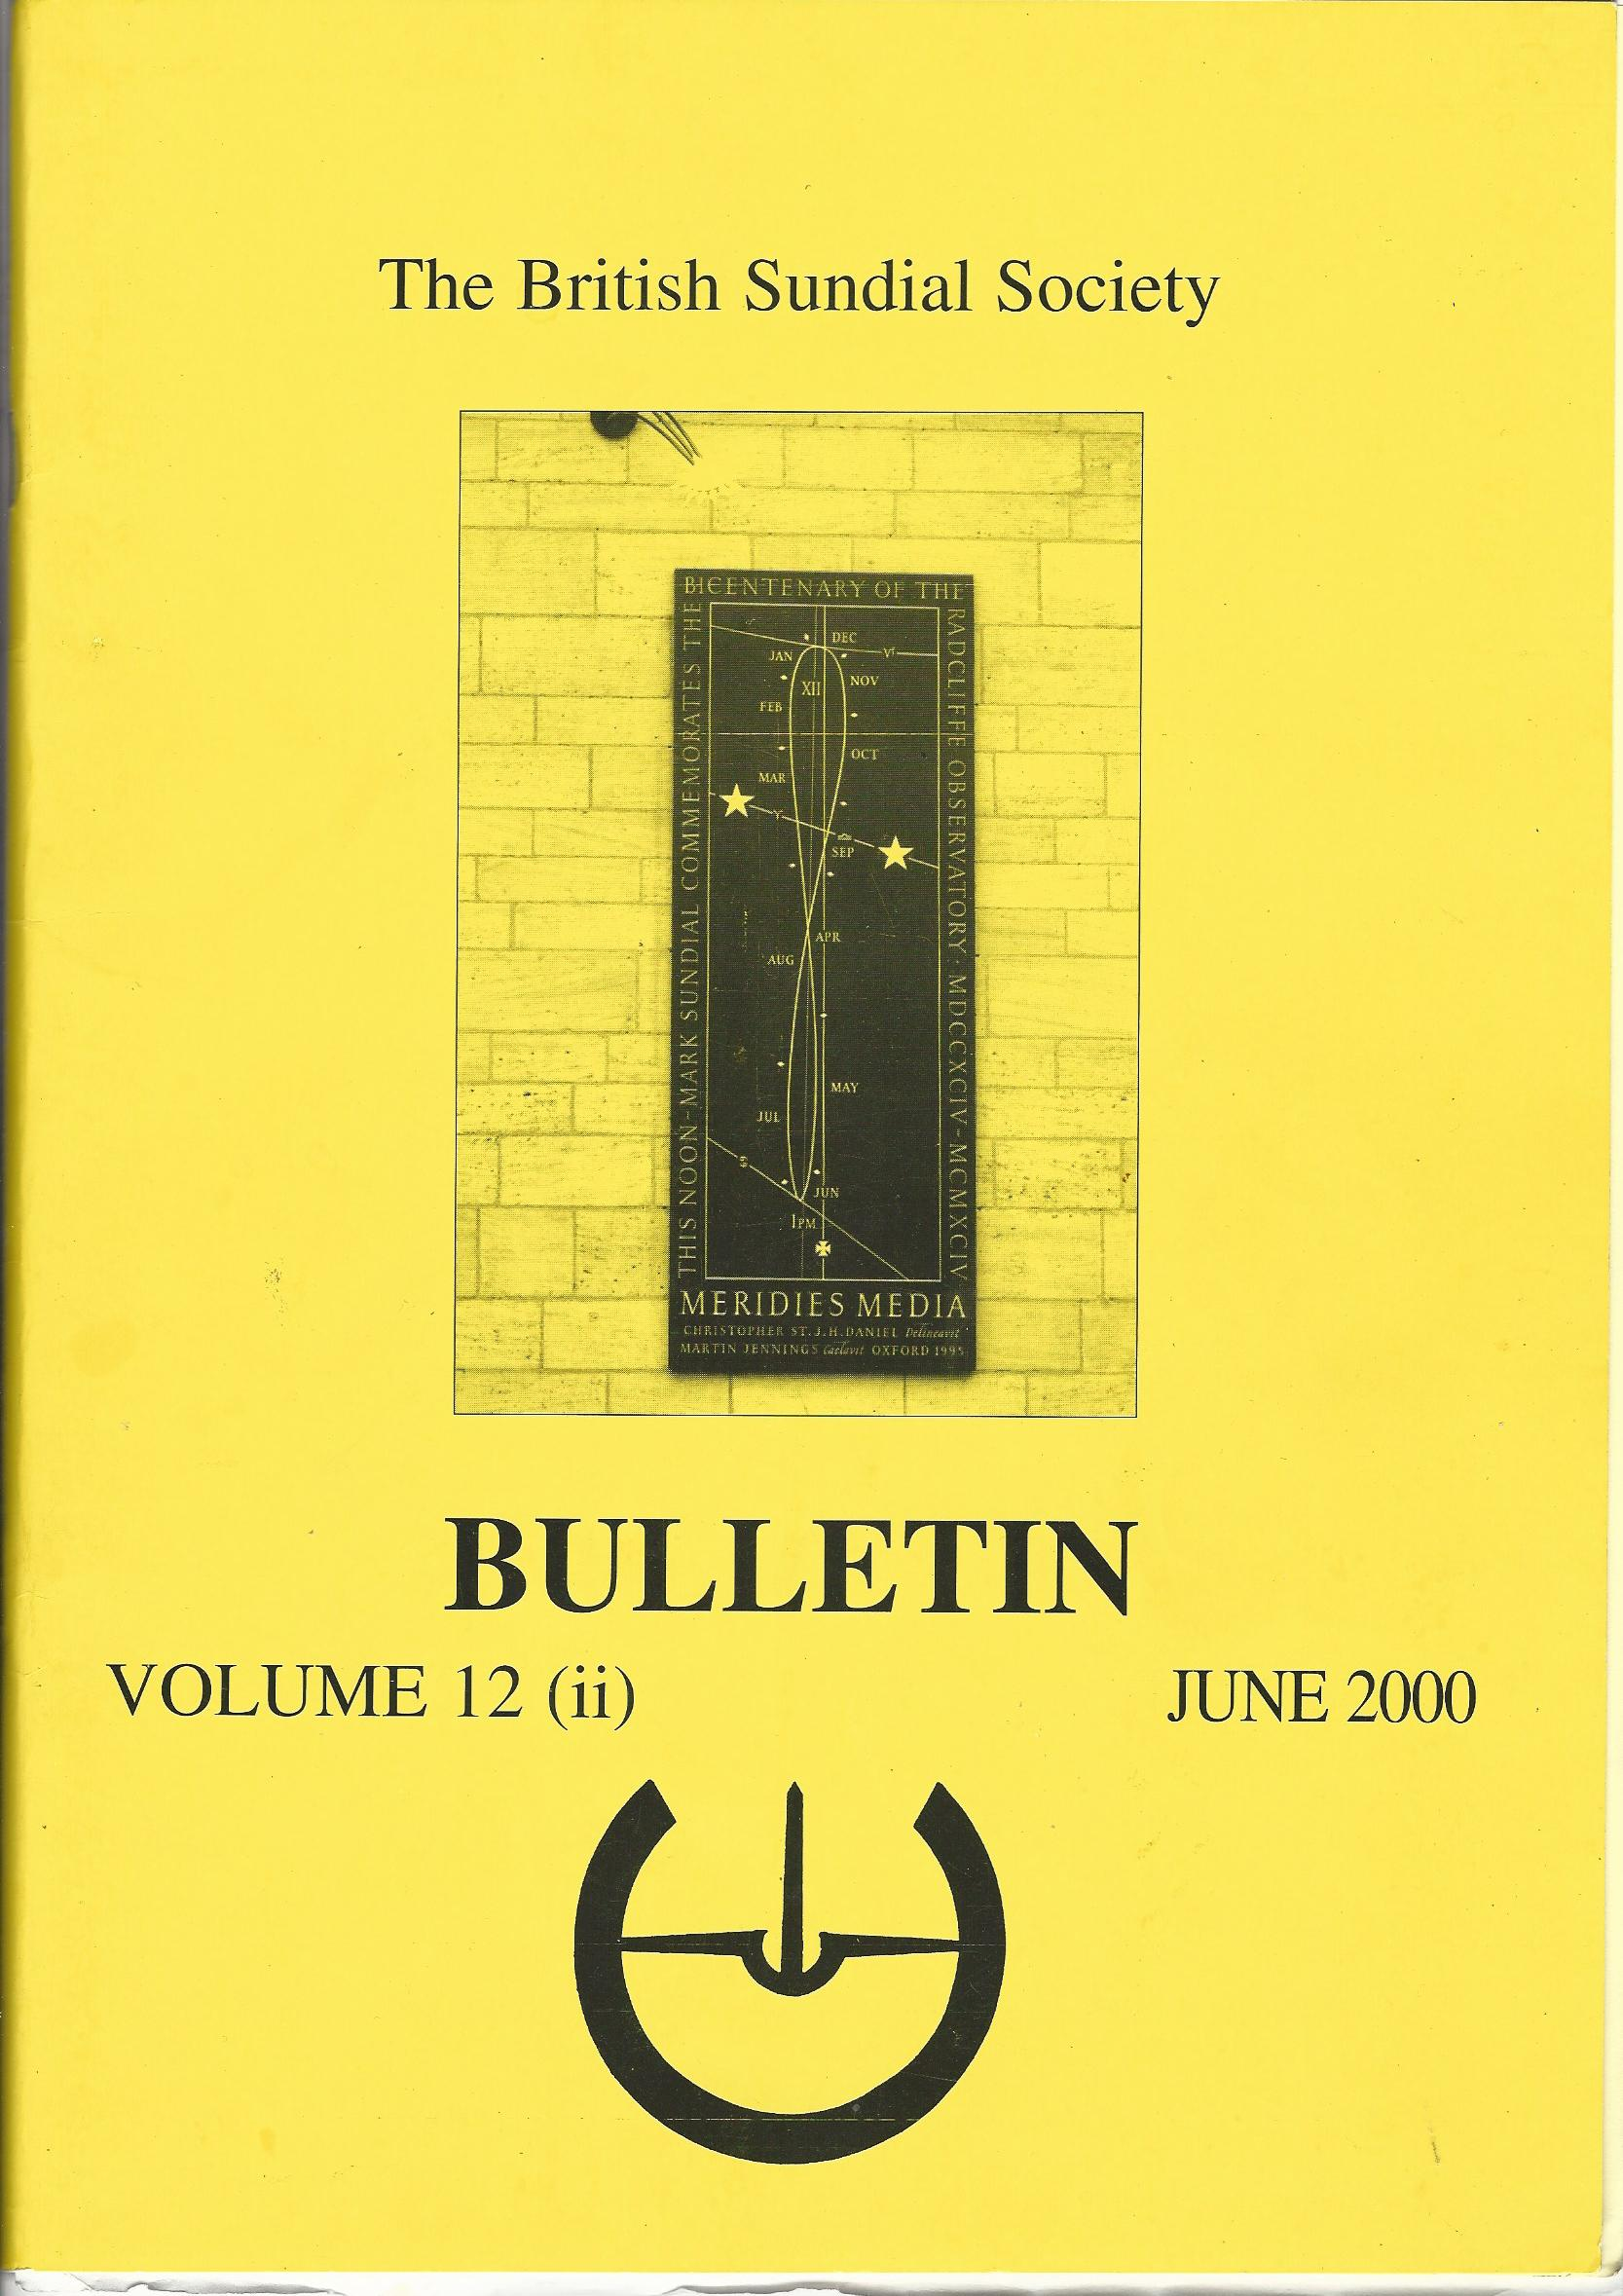 Image for The British Sundial Society Bulletin Volume 12 (iii) June 2000.